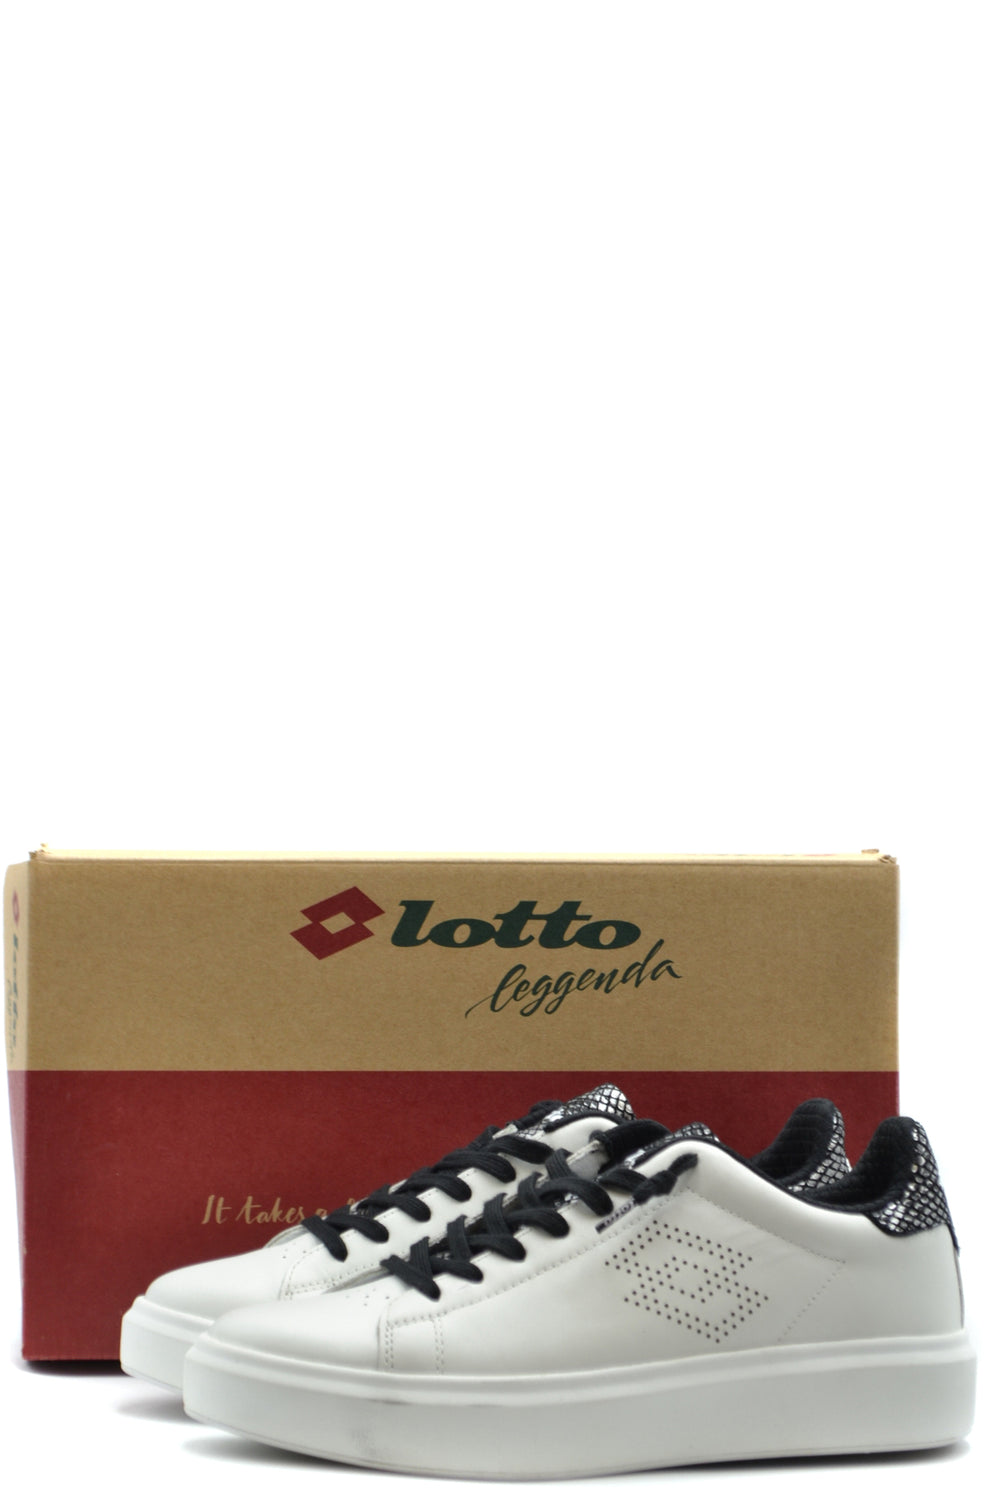 Shoes Lotto